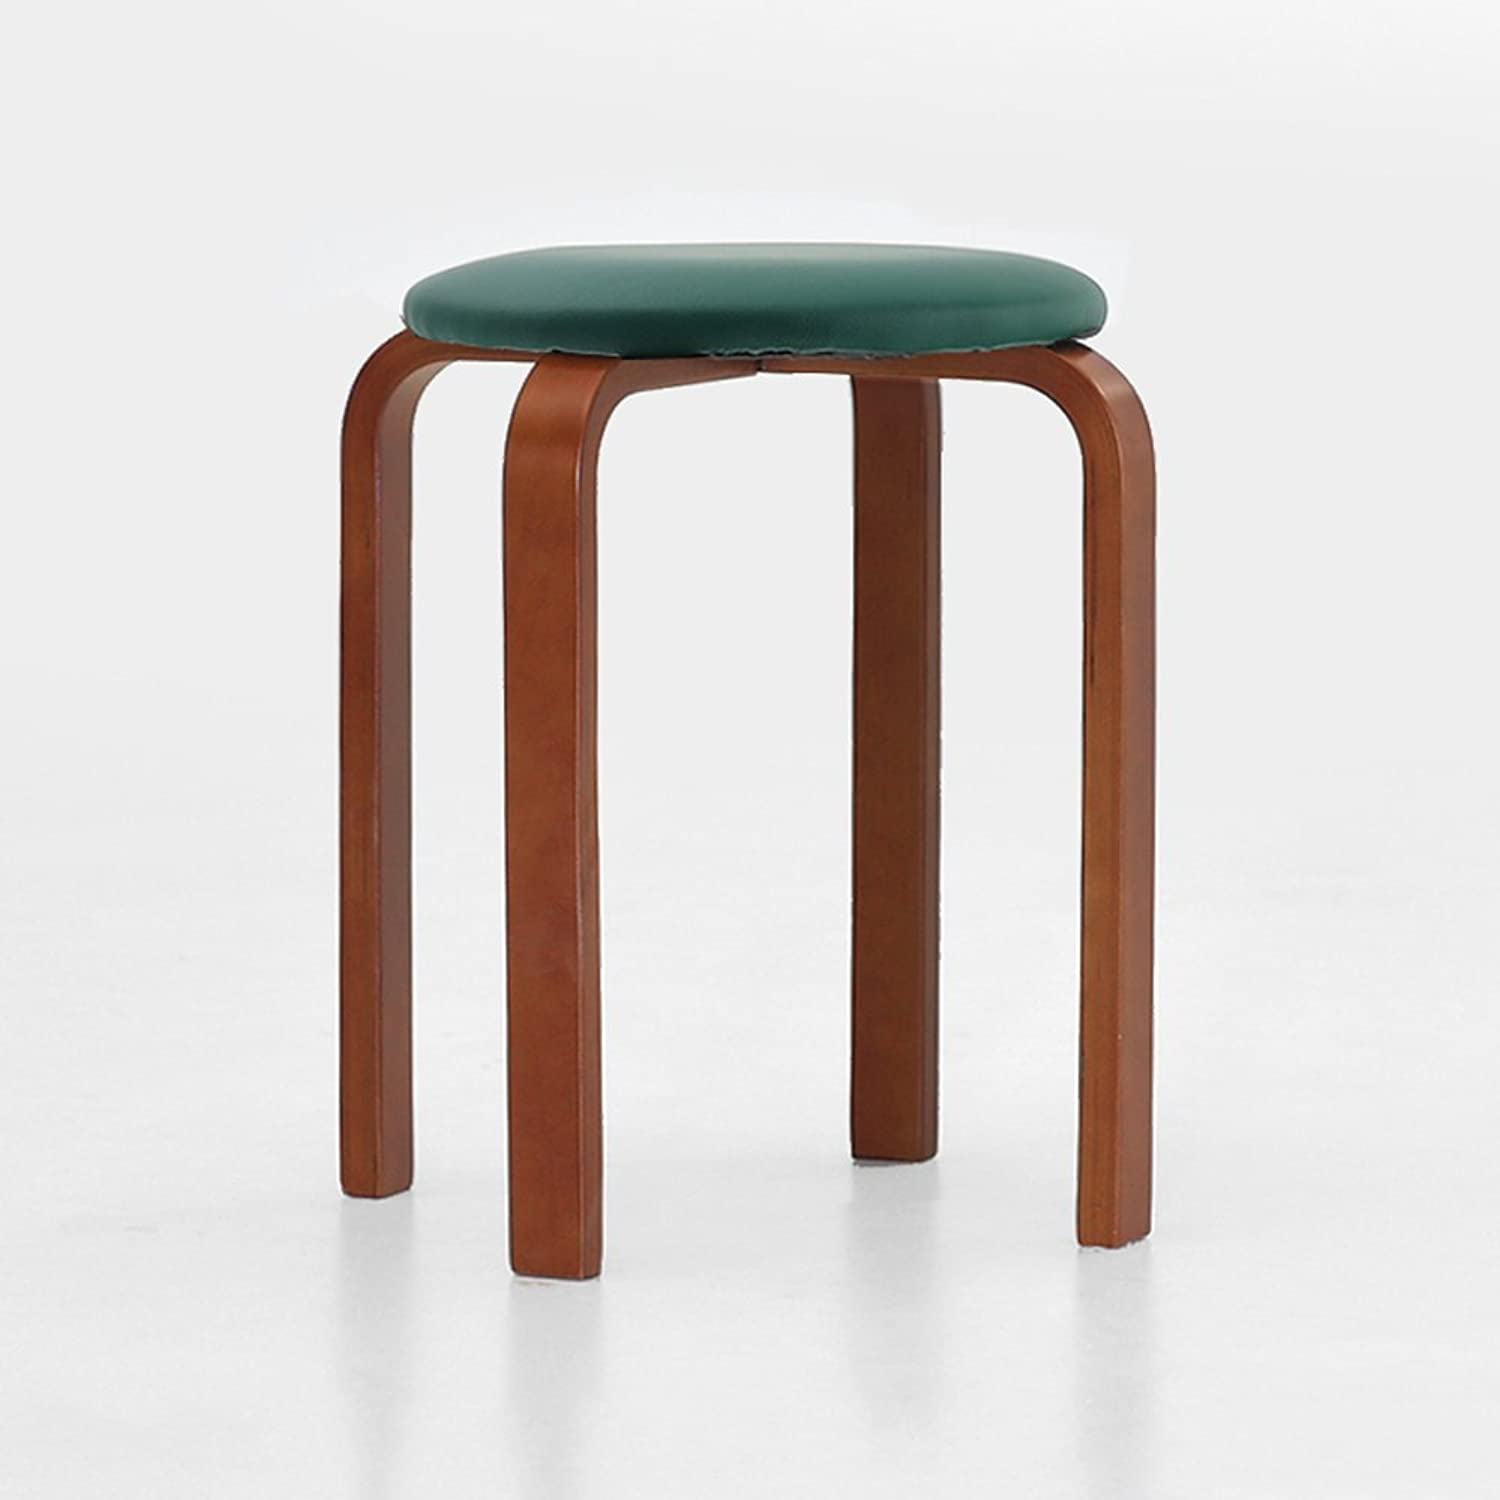 Fashion Creative Bench, Solid Wood High Stool, Adult Table Simple Stool, Modern Restaurant Simple, Round, Chair Can Be Placed, Save Space, Easy Care (color   B)